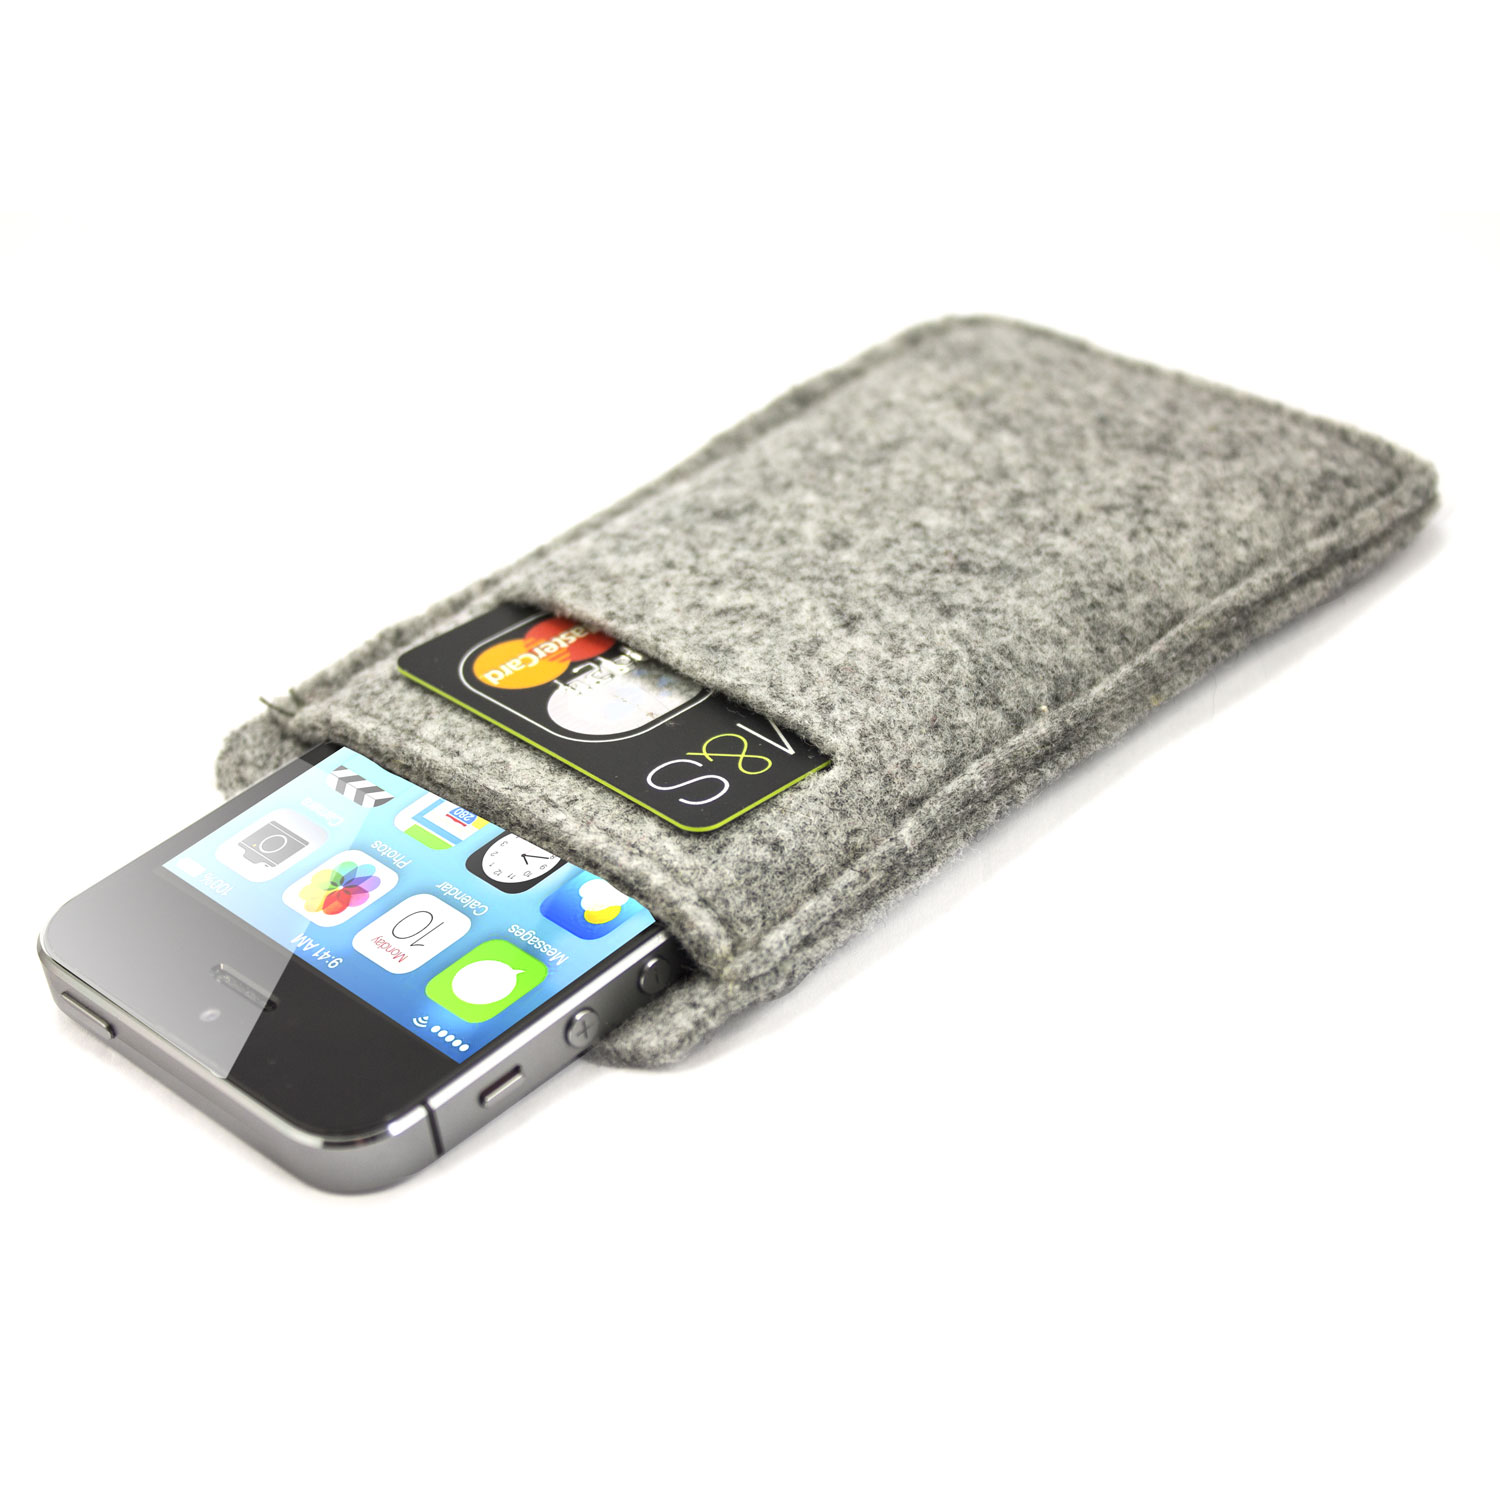 Handmade iPhone 5S / 5C / 5 Pouch